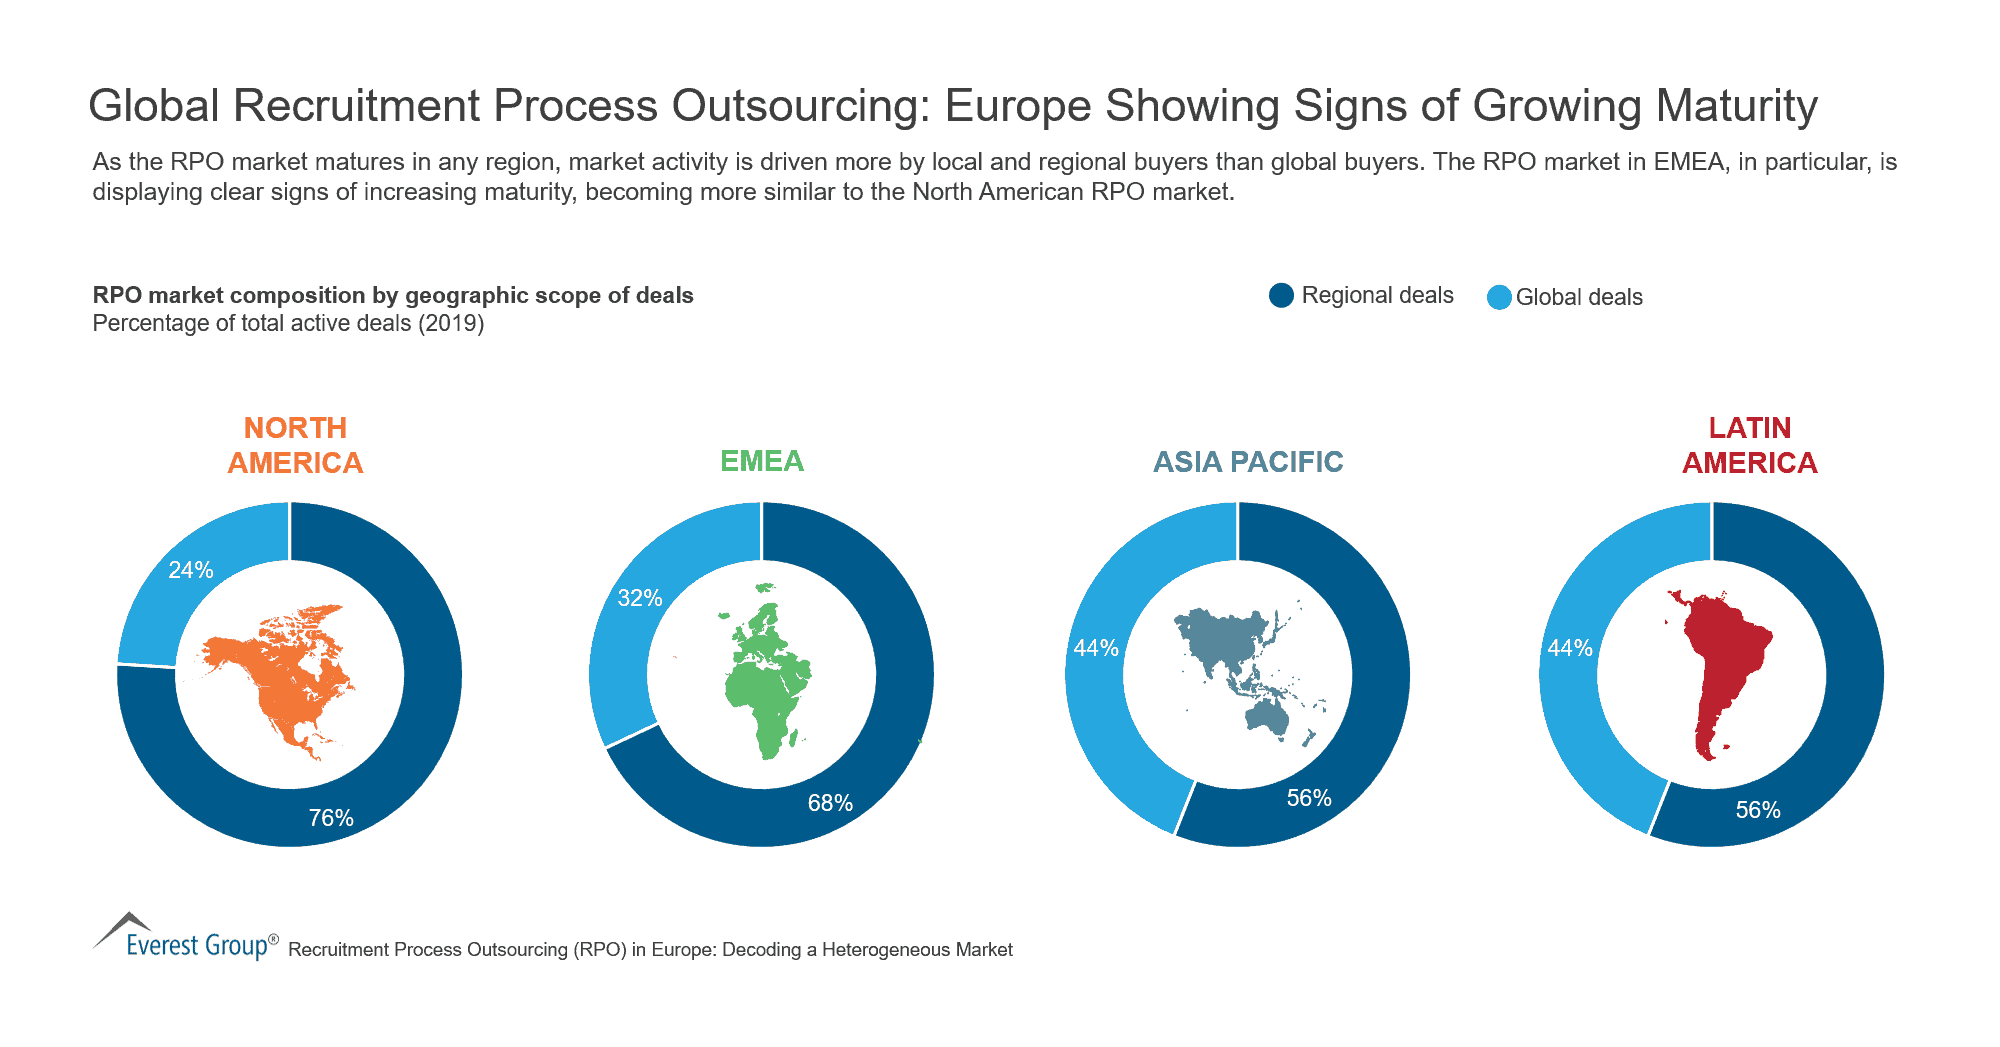 Global Recruitment Process Outsourcing - Europe Showing Signs of Growing Maturity